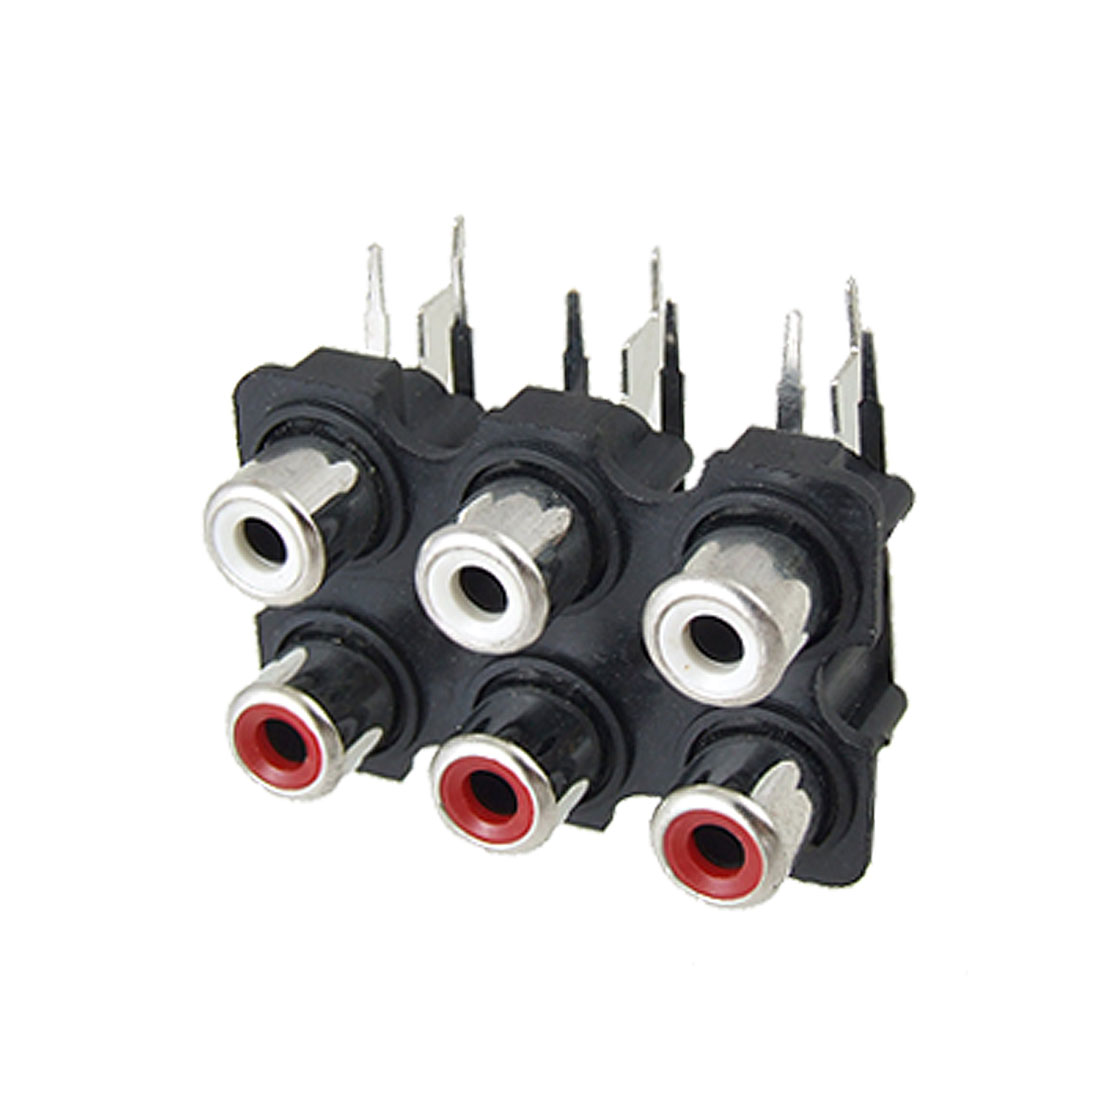 6 RCA Female Outlet AV Concentric Socket Connector